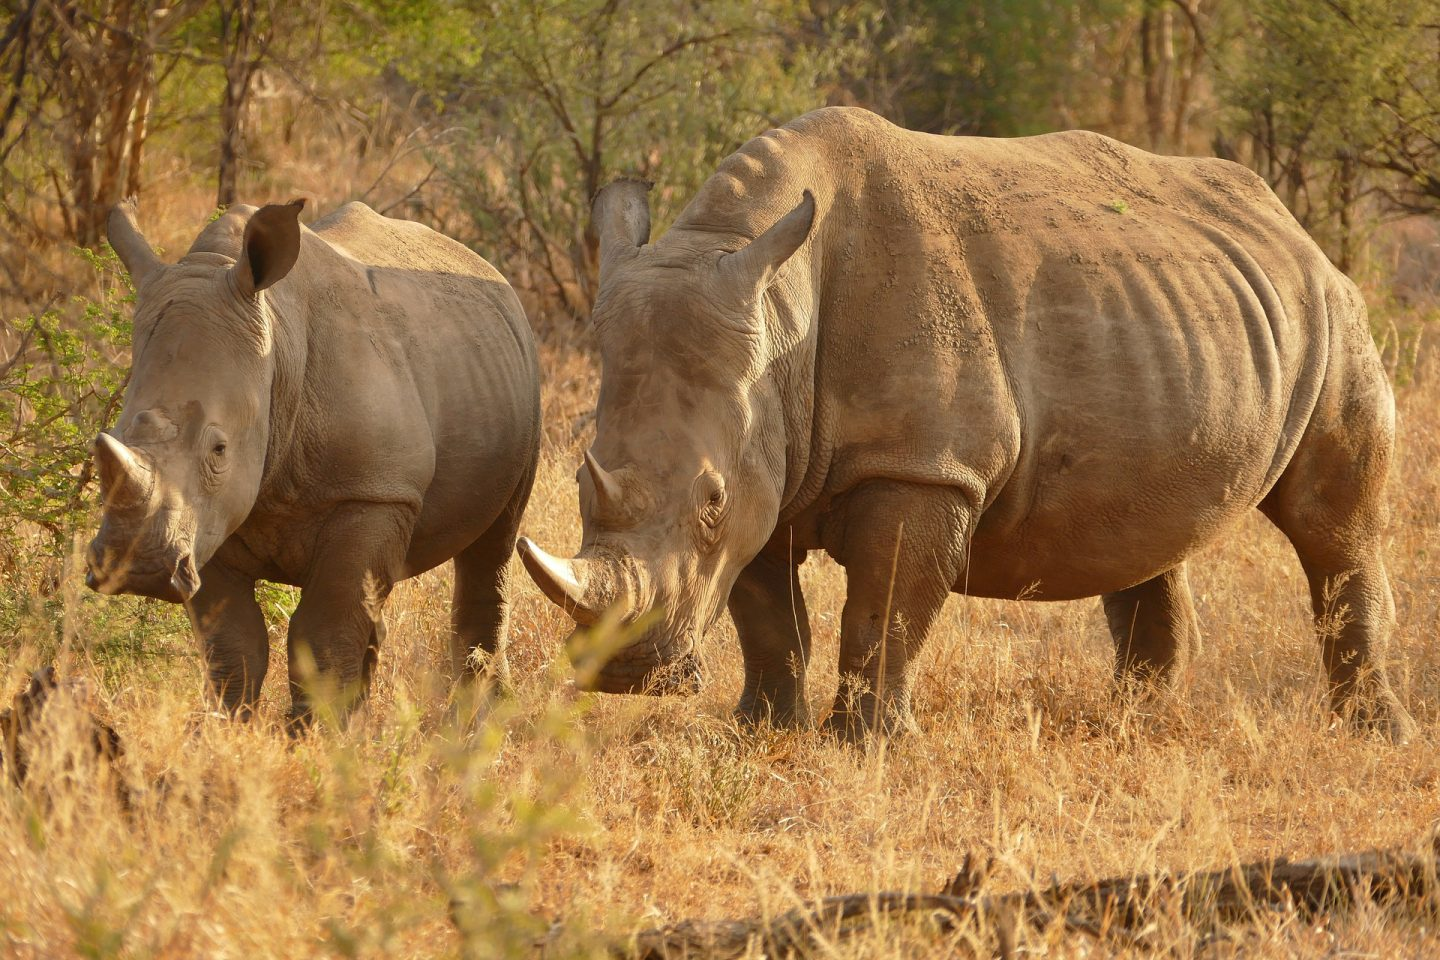 An image of two rhinos in Africa